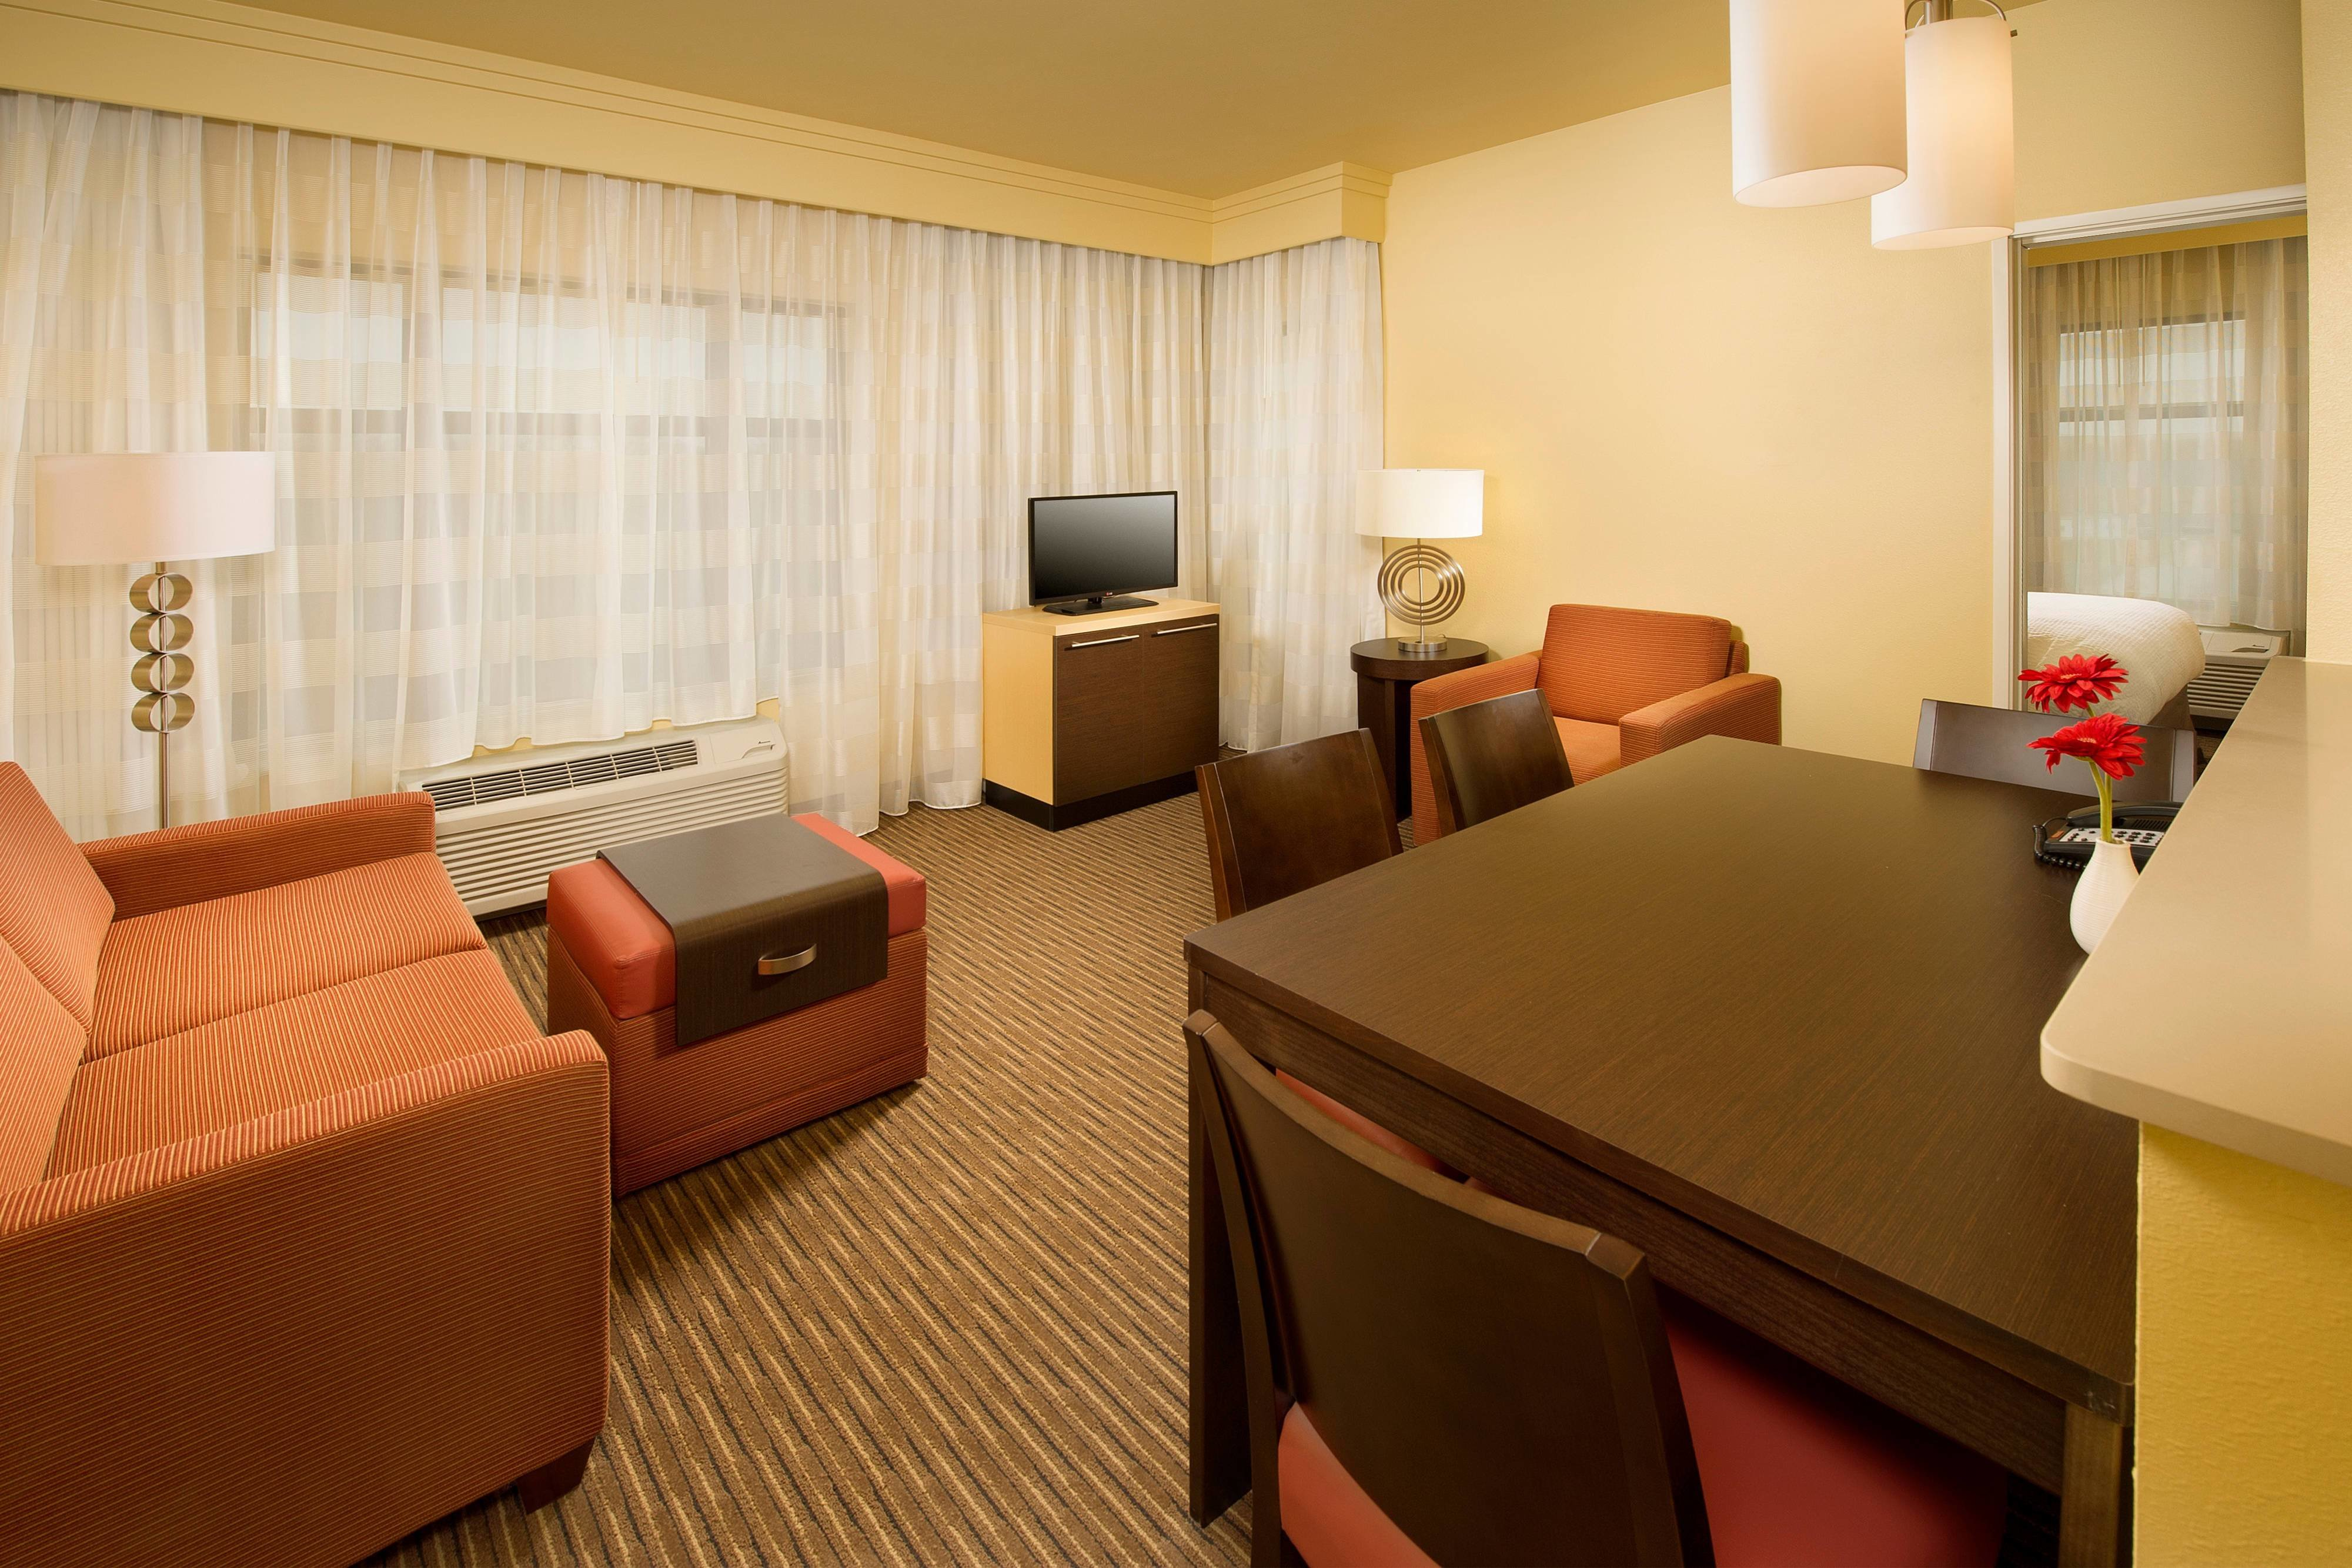 Best Hotels In Grapevine Tx Towneplace Suites Dallas Dfw With Pictures